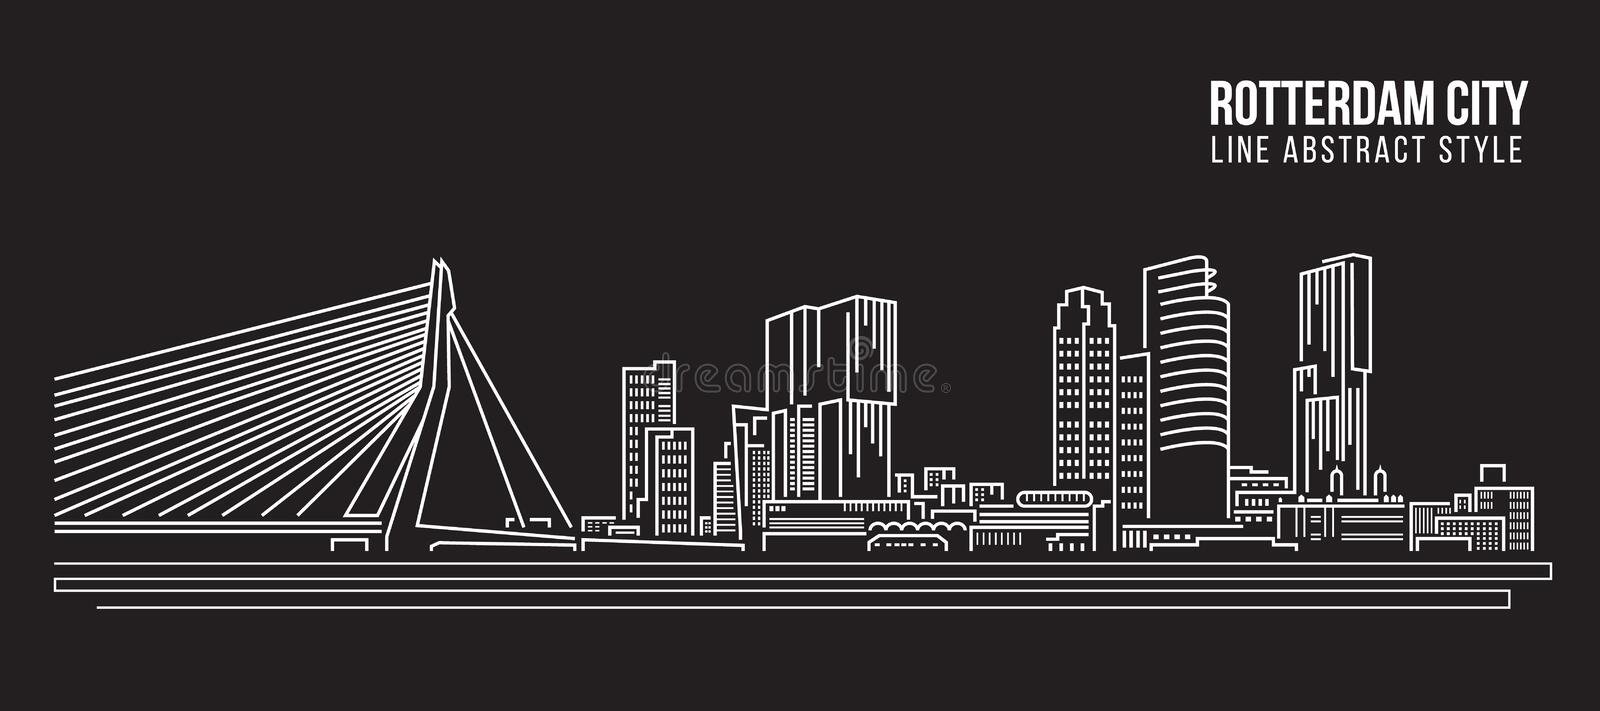 Cityscape Building Line art Vector Illustration design - Rotterdam City stock illustration